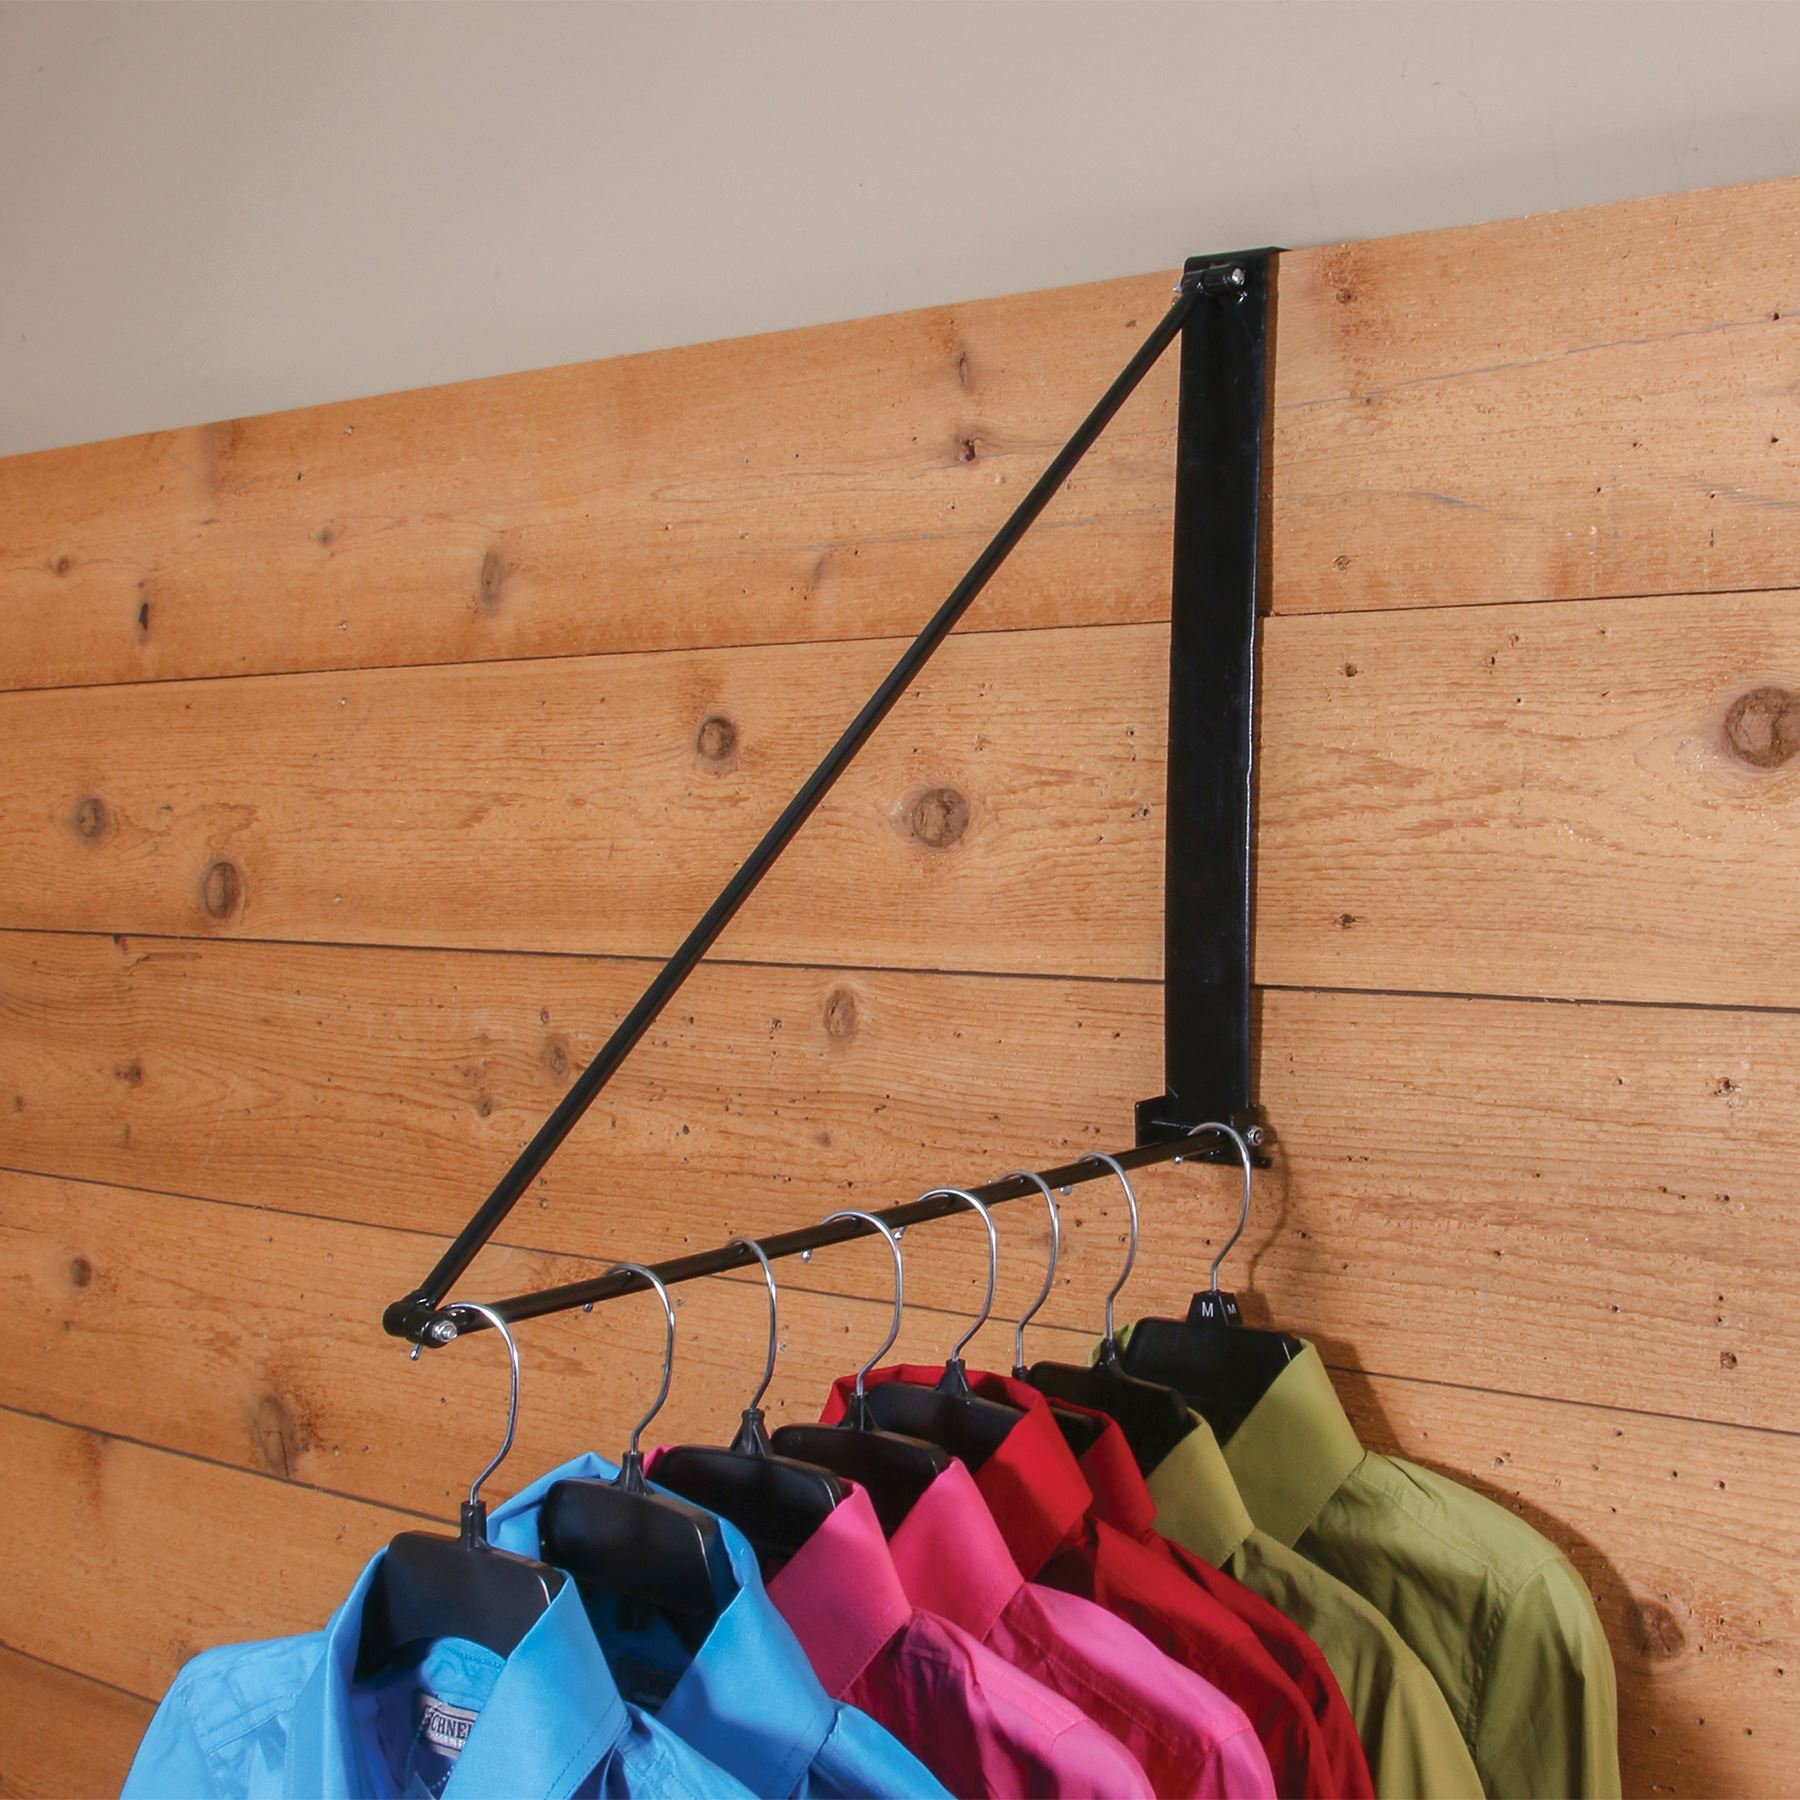 easy up collapsible clothing hanger in clothing racks at schneider